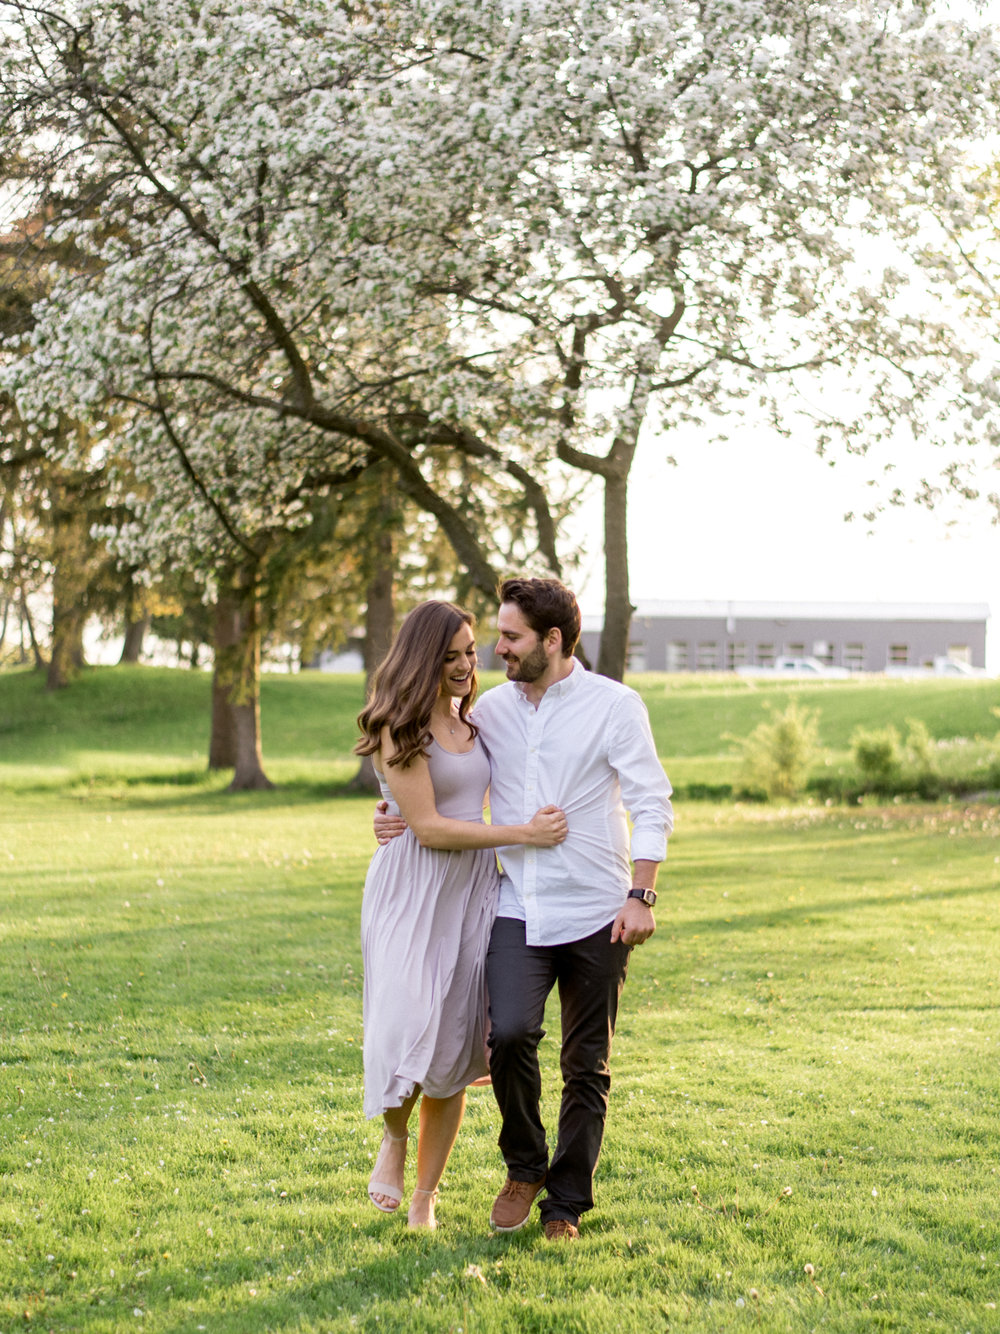 Chris & Heather's Engagement Session in Vineland Ontario Spring Blossoms Trees by Hush Hush Photography & Film Aidan Hennebry - 21.jpg